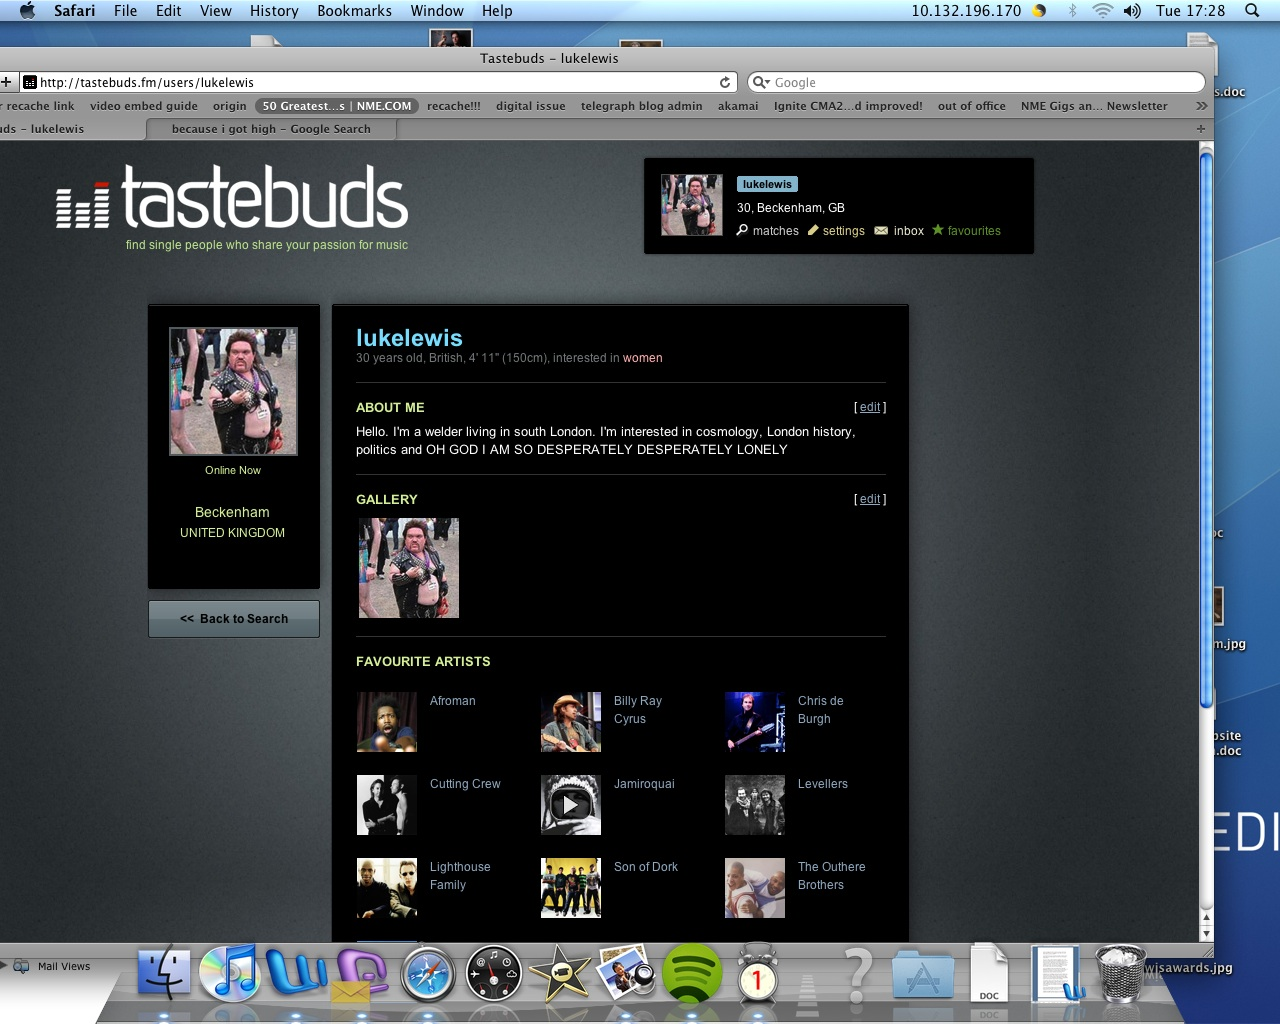 Tastebuds.fm dating sites messaging